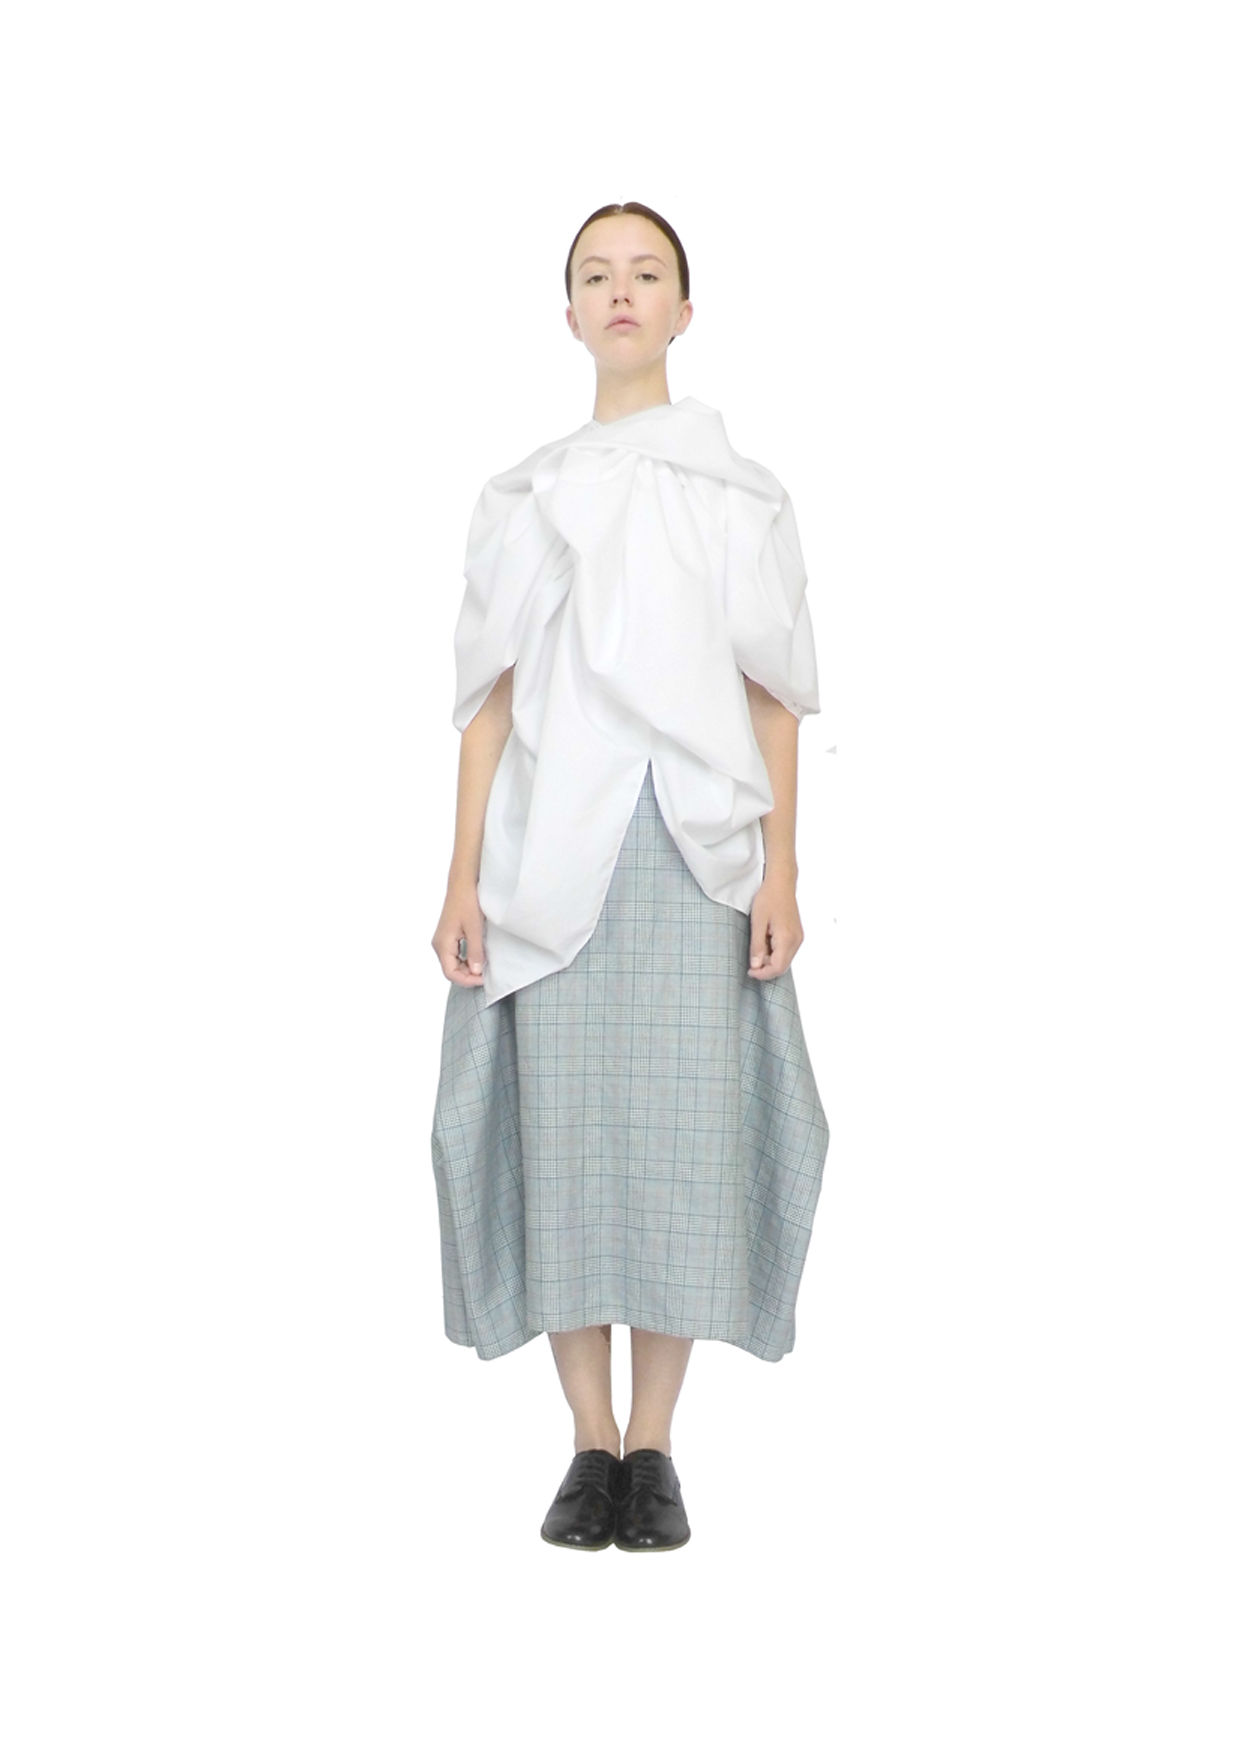 Rosette blouse & blanket skirt